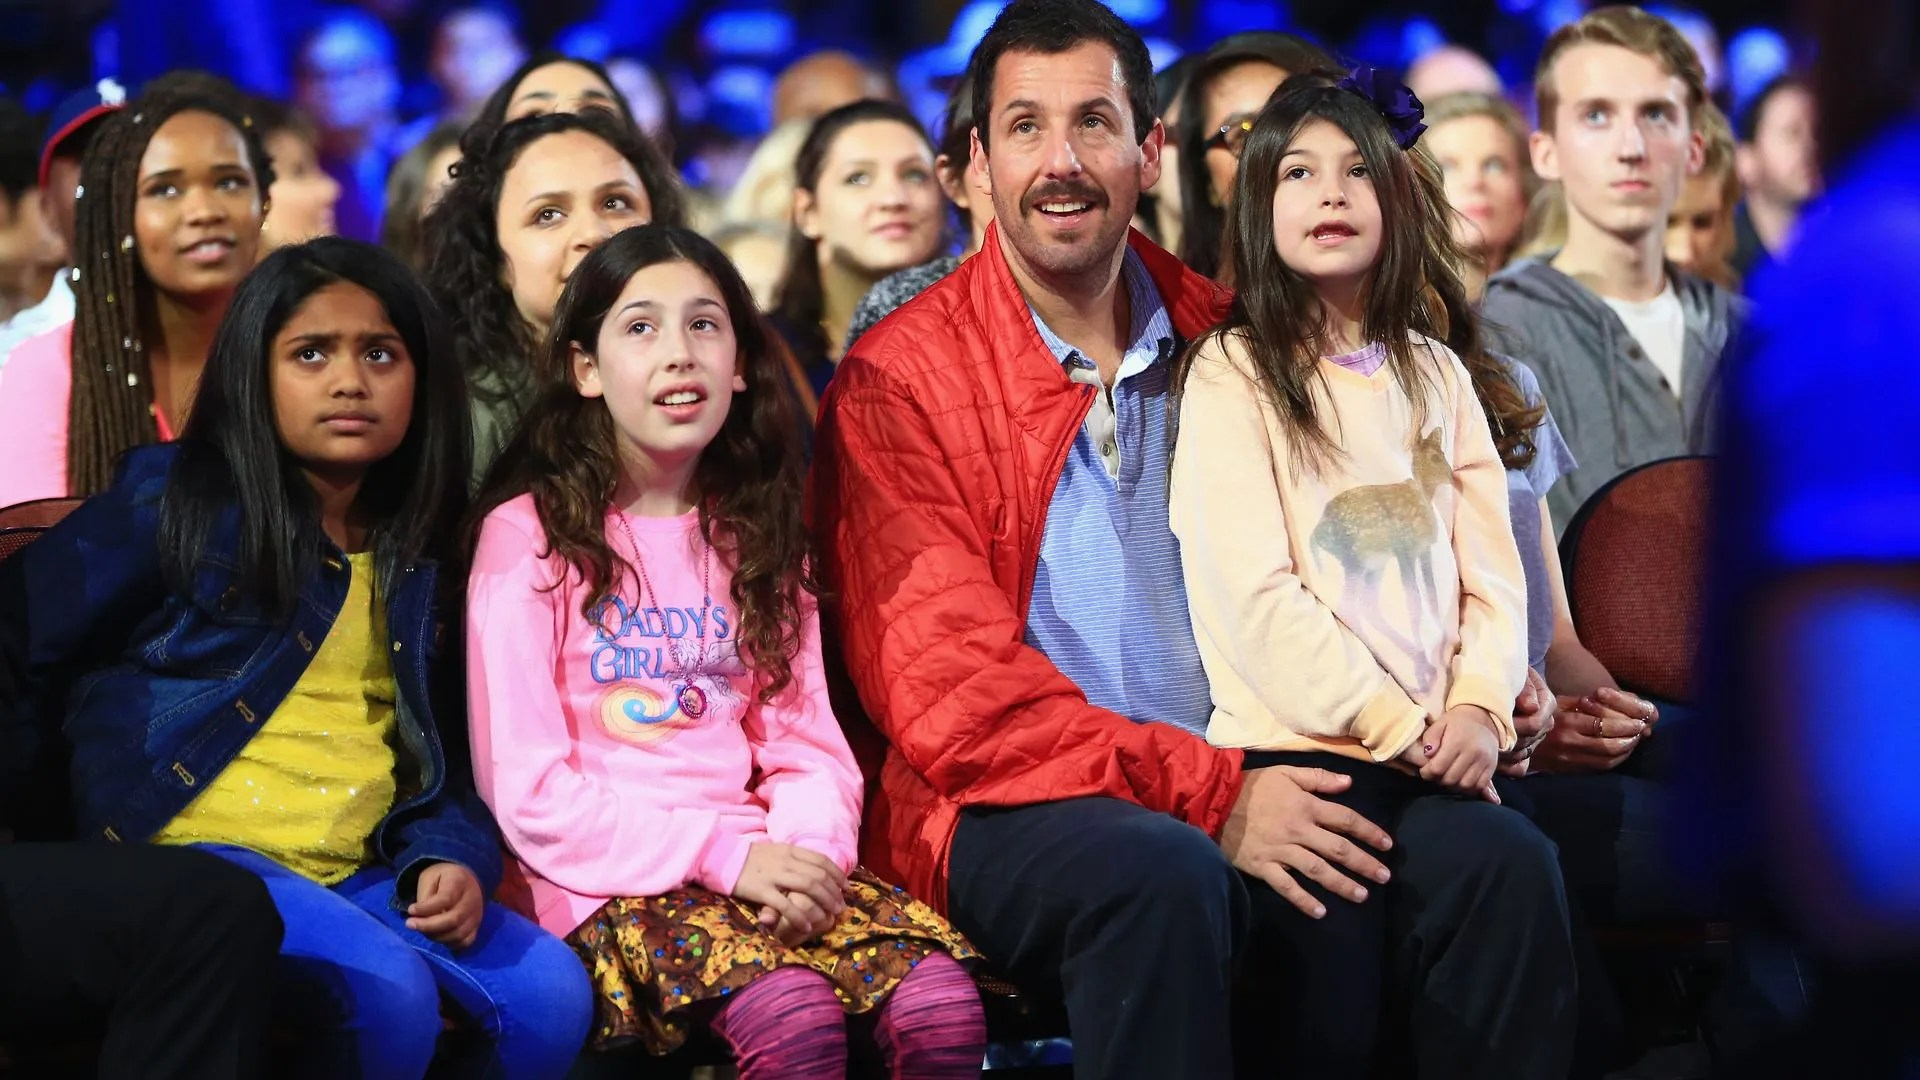 20 Things To Know About The Way Adam Sandler Raises His Kids